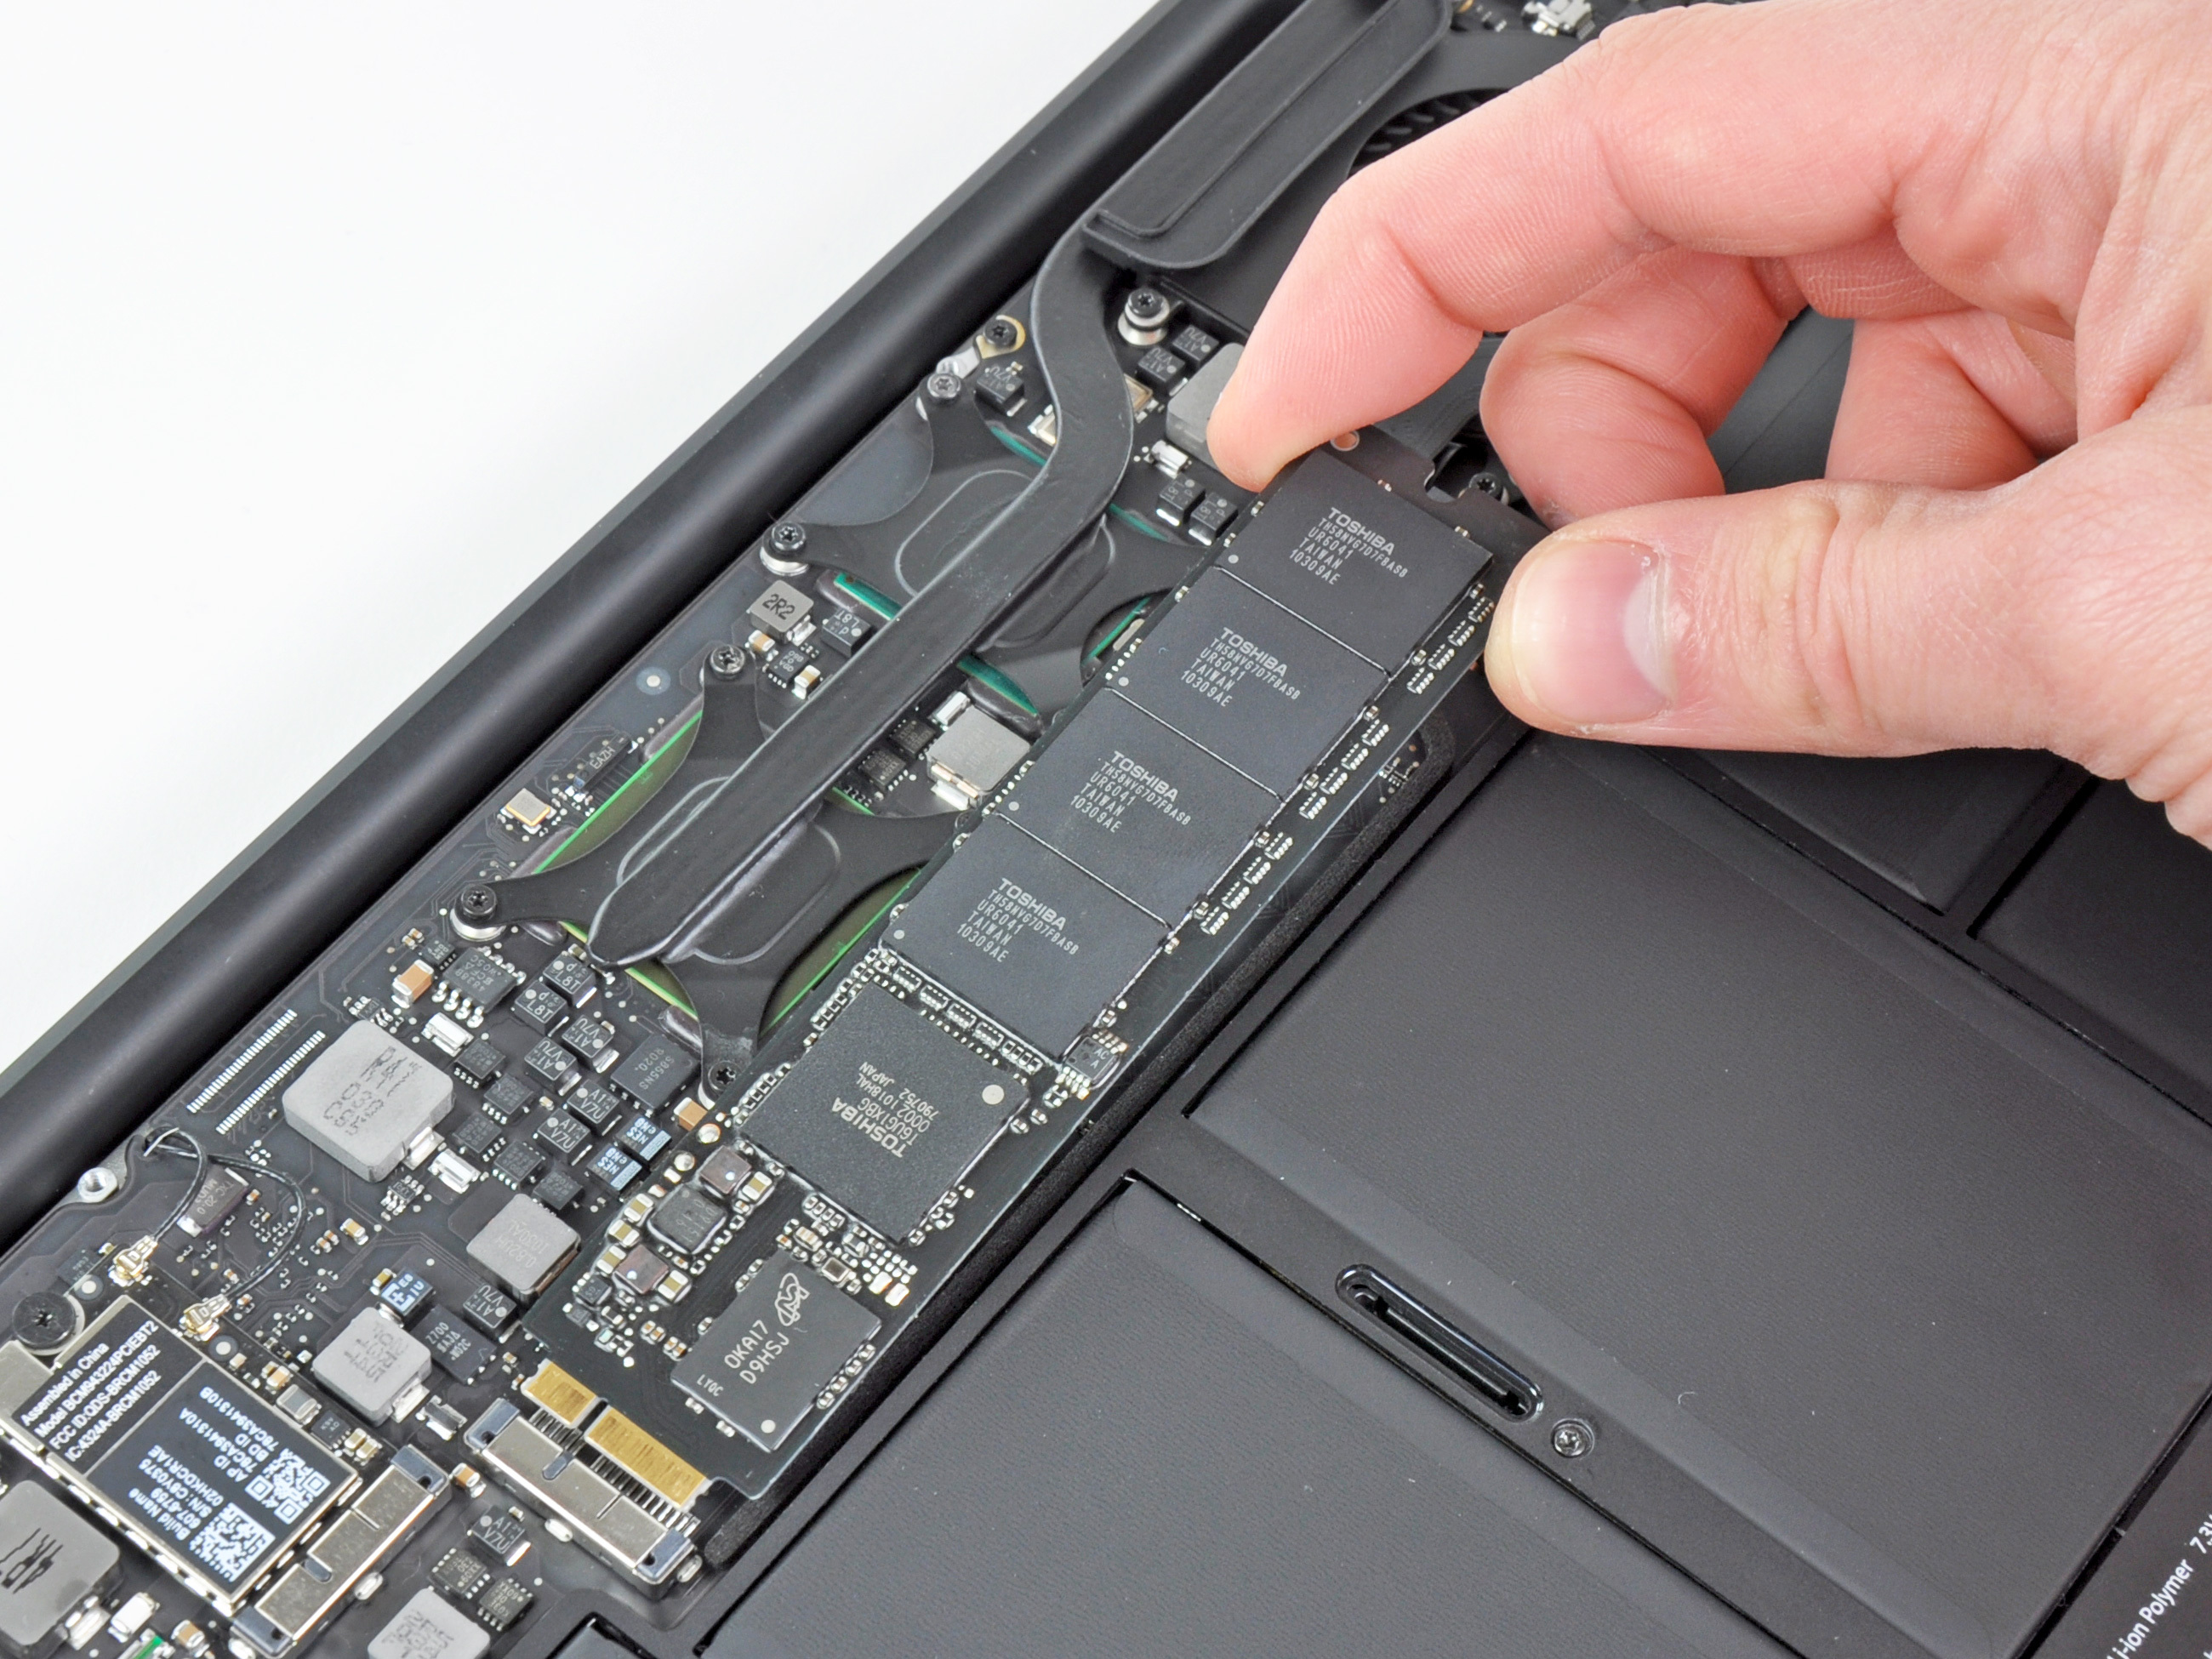 Macbook Air 11 Quot Late 2010 Solid State Drive Replacement